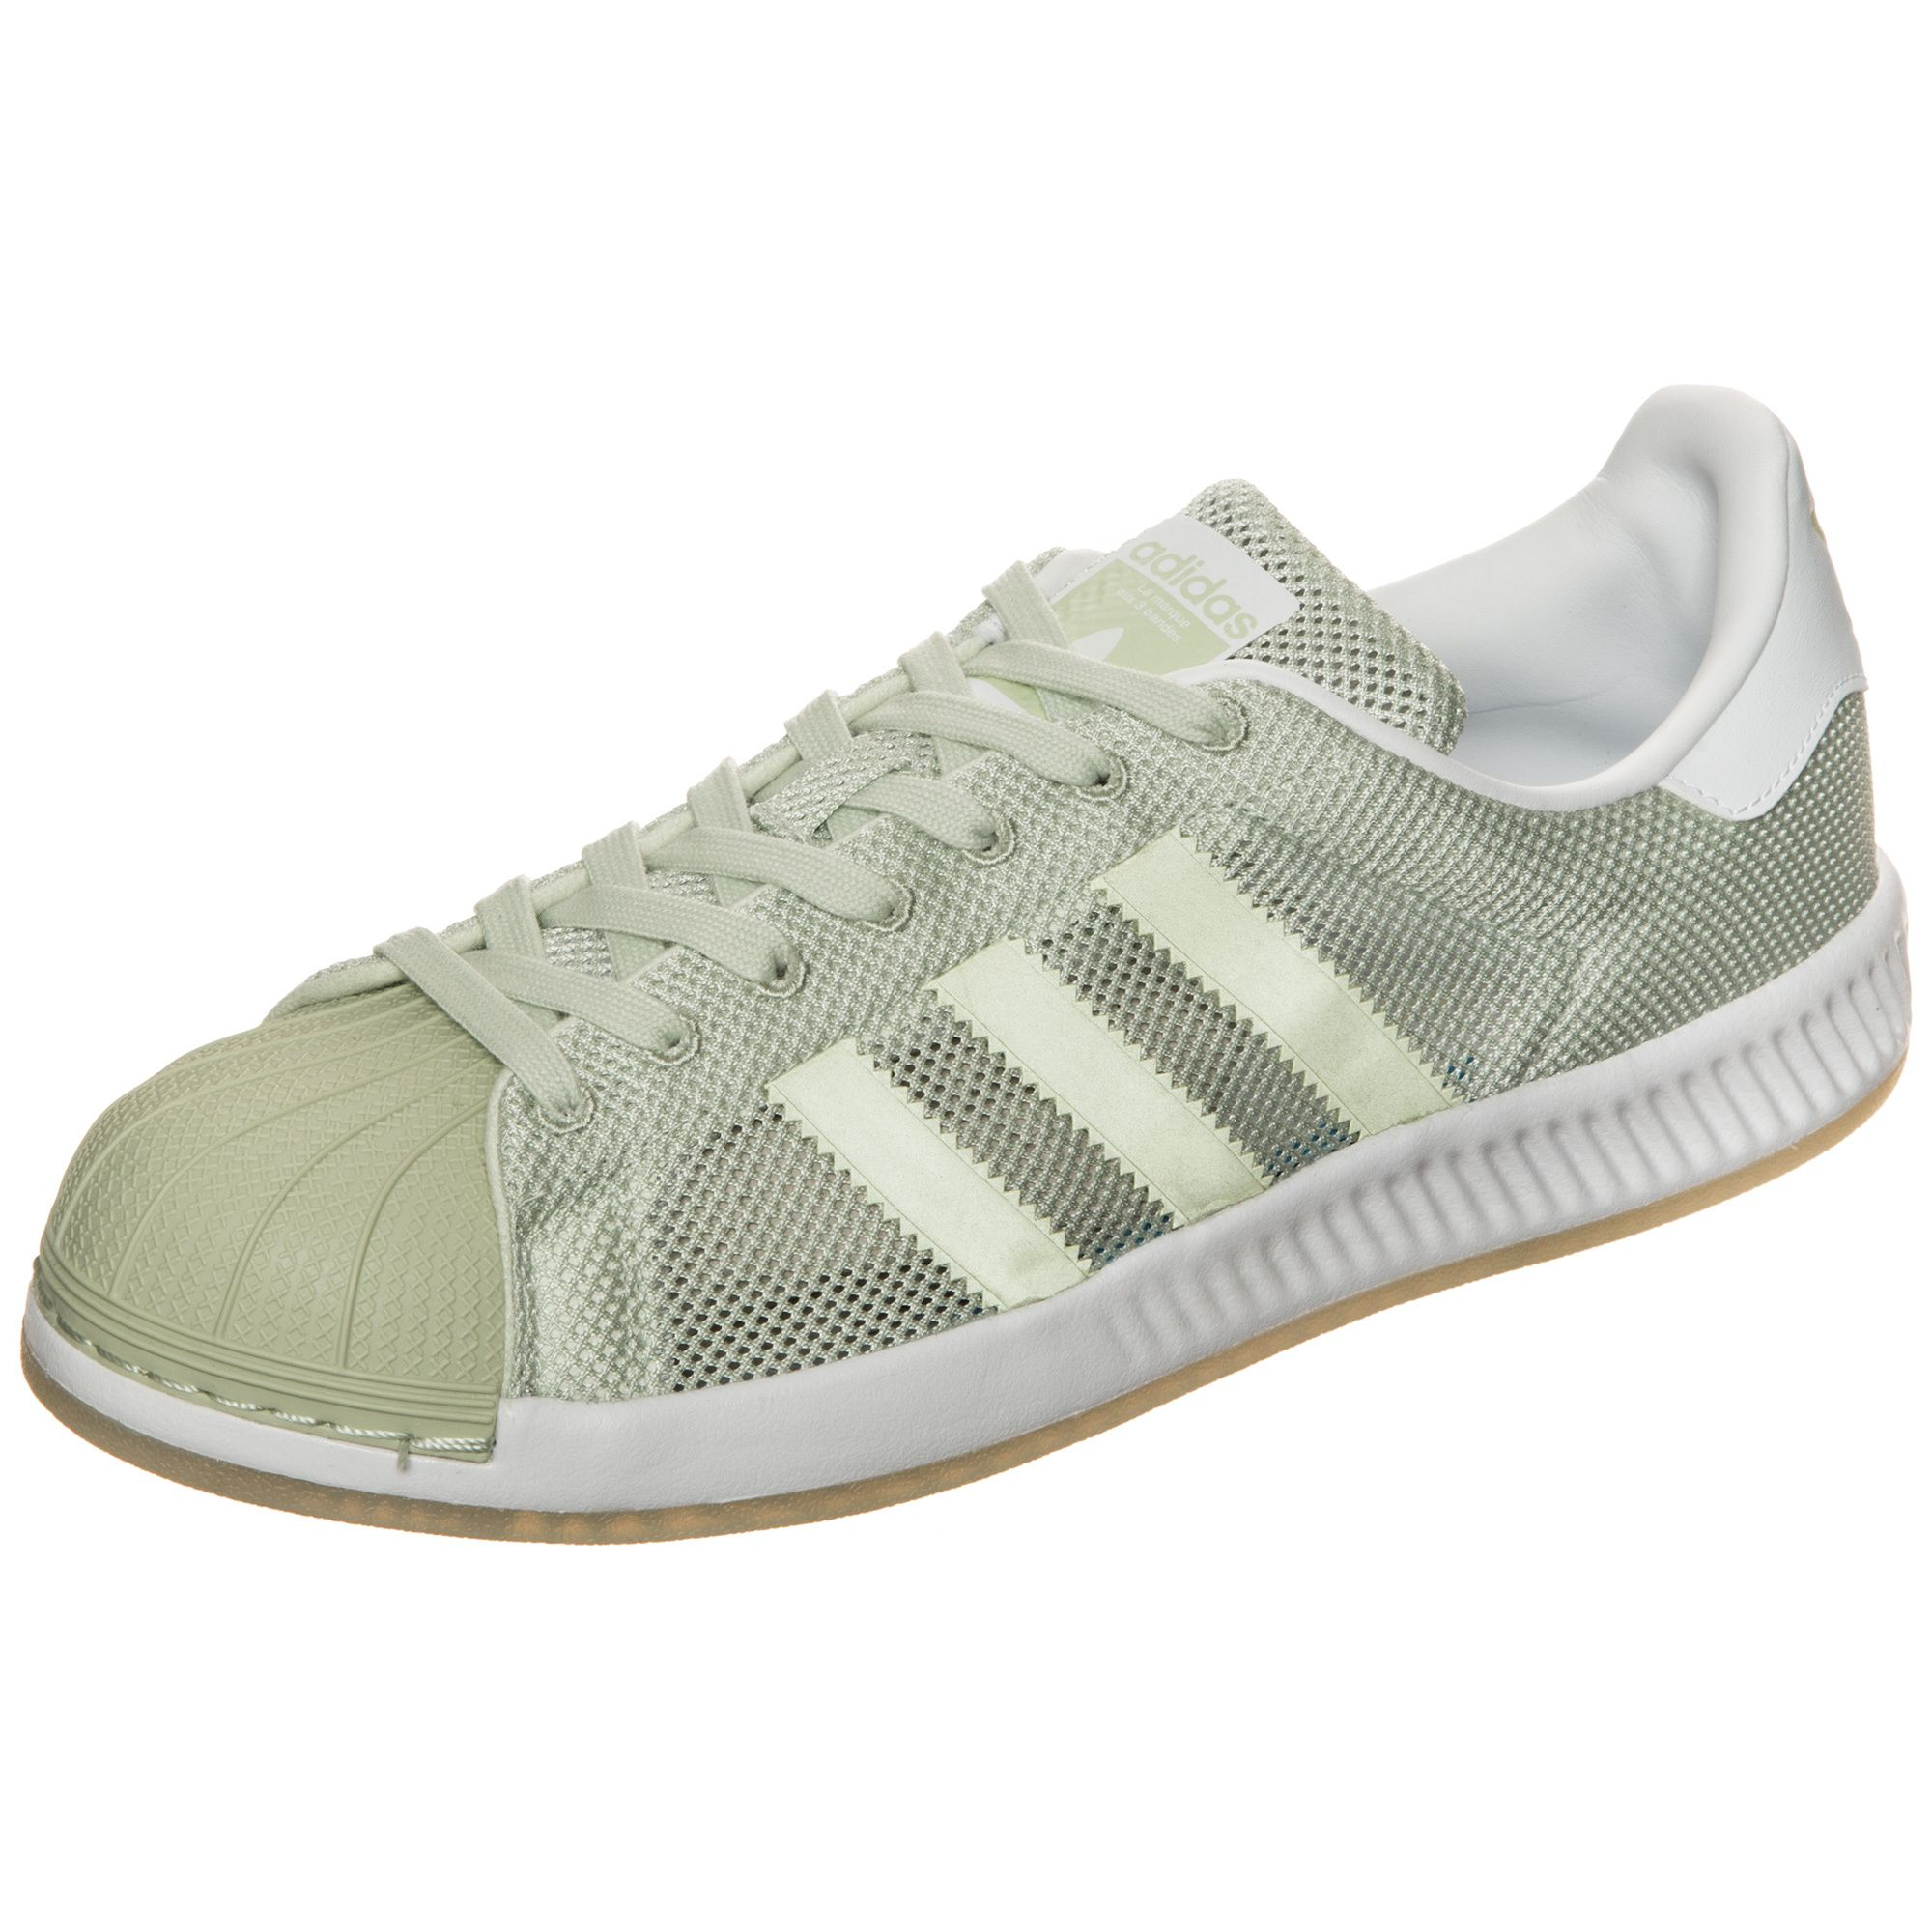 ADIDAS ORIGINALS adidas Originals Superstar Bounce Sneaker